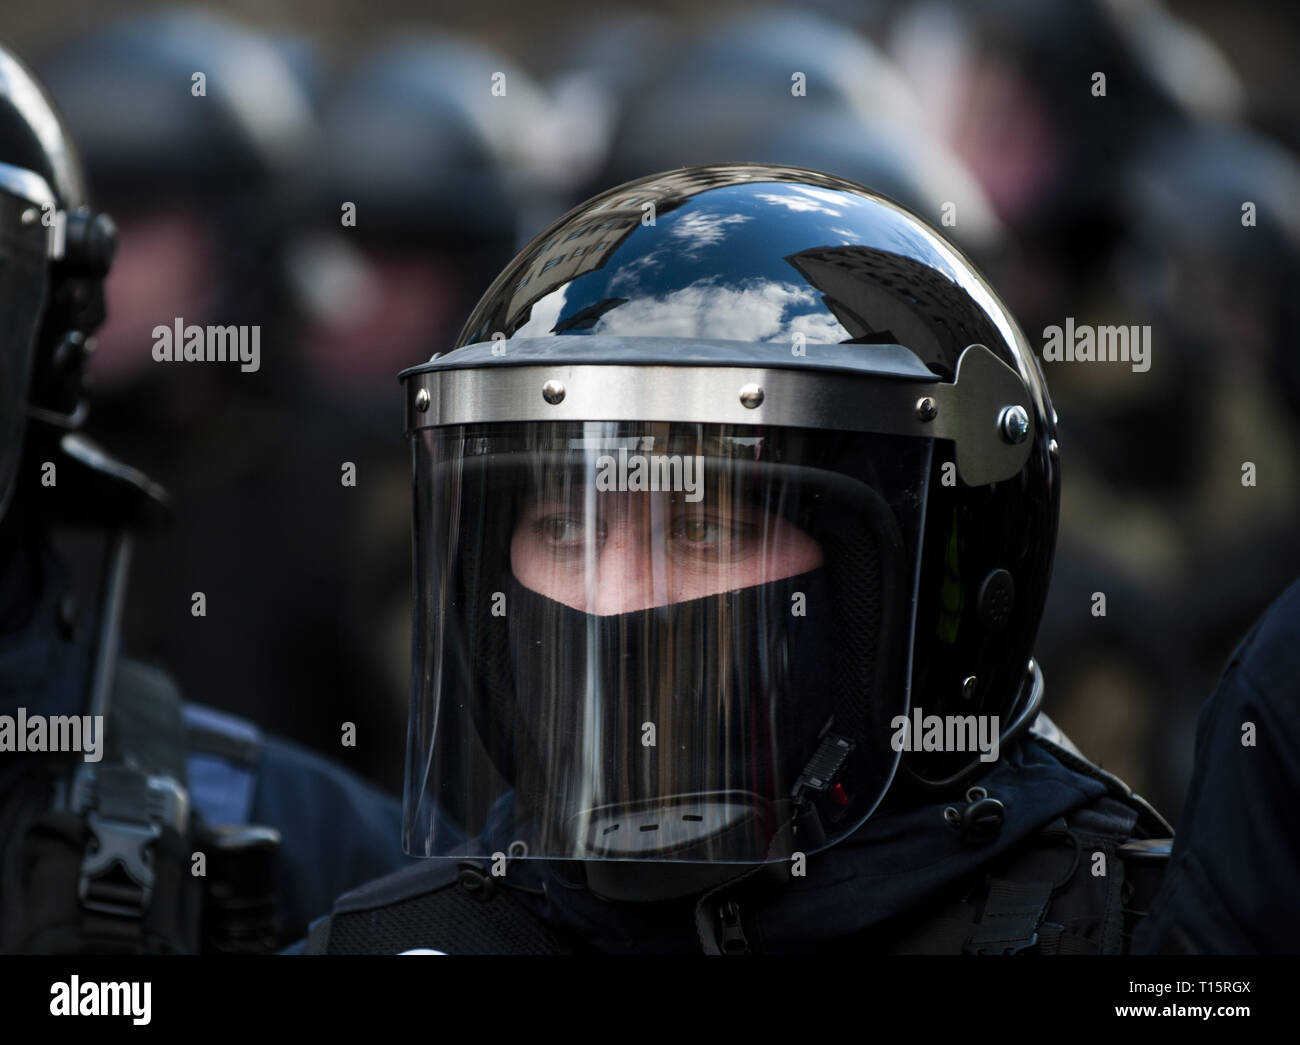 Kyiv, Kyiv Oblast, Ukraine. 23rd Mar, 2019. A Ukrainian police officer in riot gear seen standing guard during the demonstration. Protesters gathered in Maidan Square then marched to the Presidential Administration building to call on President Petro Poroshenko to bring corrupt governmental officials to justice. With the Ukrainian Elections being held at the end of March the political tensions run very high. Credit: Matthew Hatcher/SOPA Images/ZUMA Wire/Alamy Live News Stock Photo